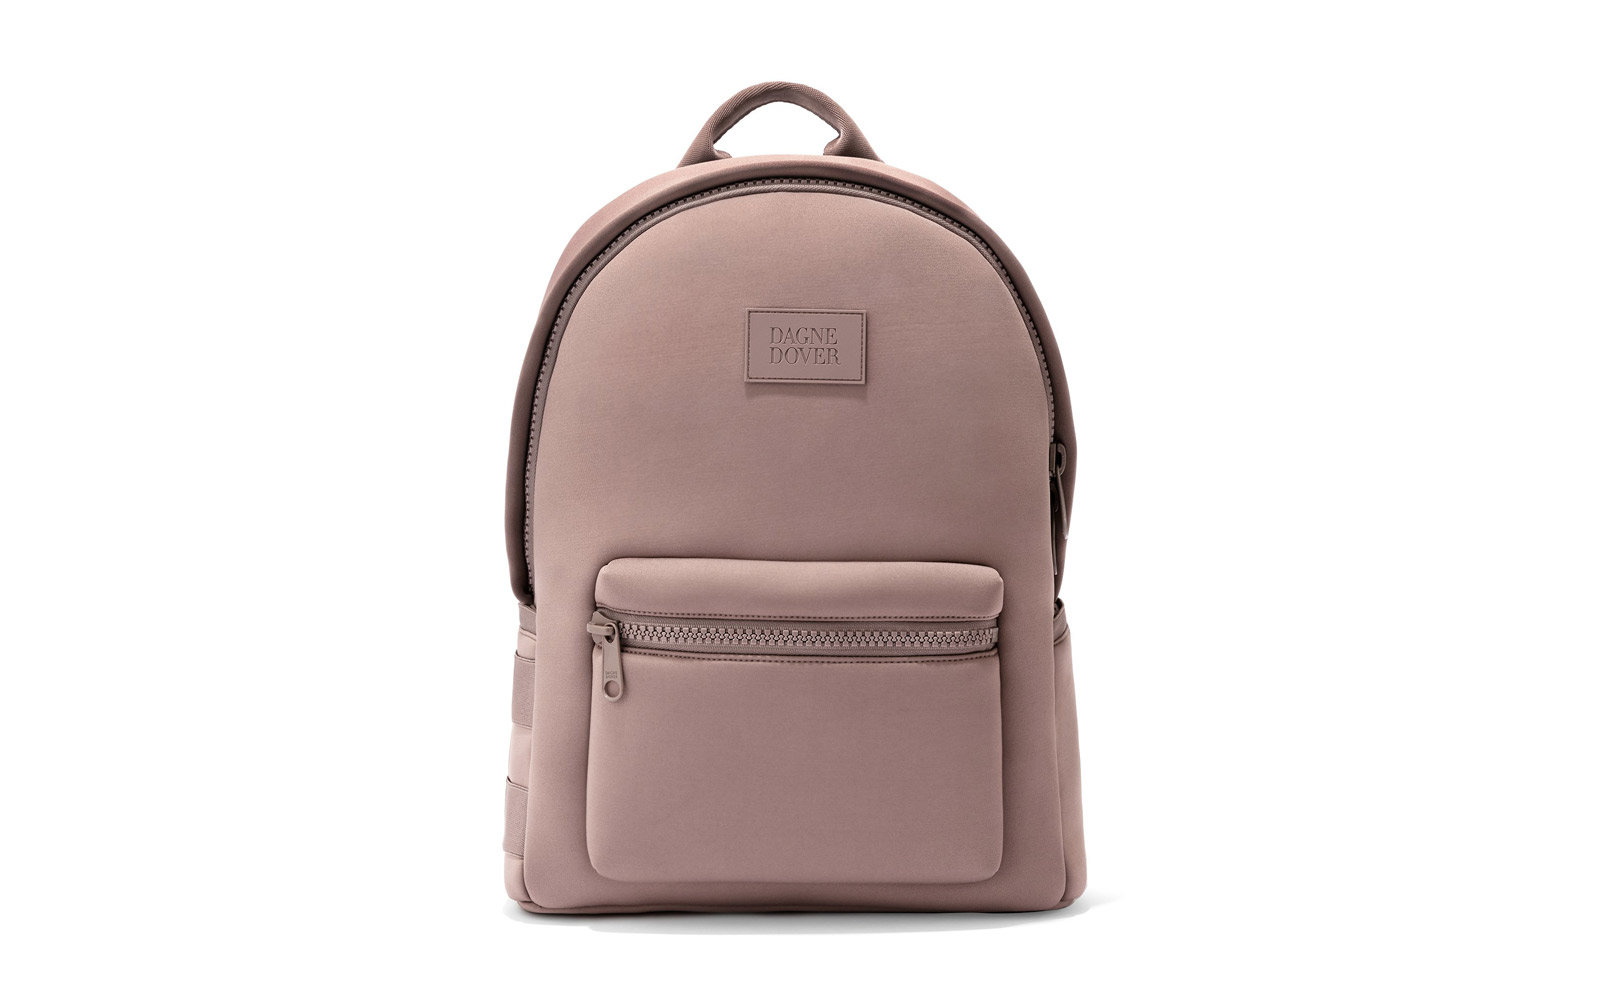 f27ad6c6d51 The Most Stylish Travel Backpacks For Women